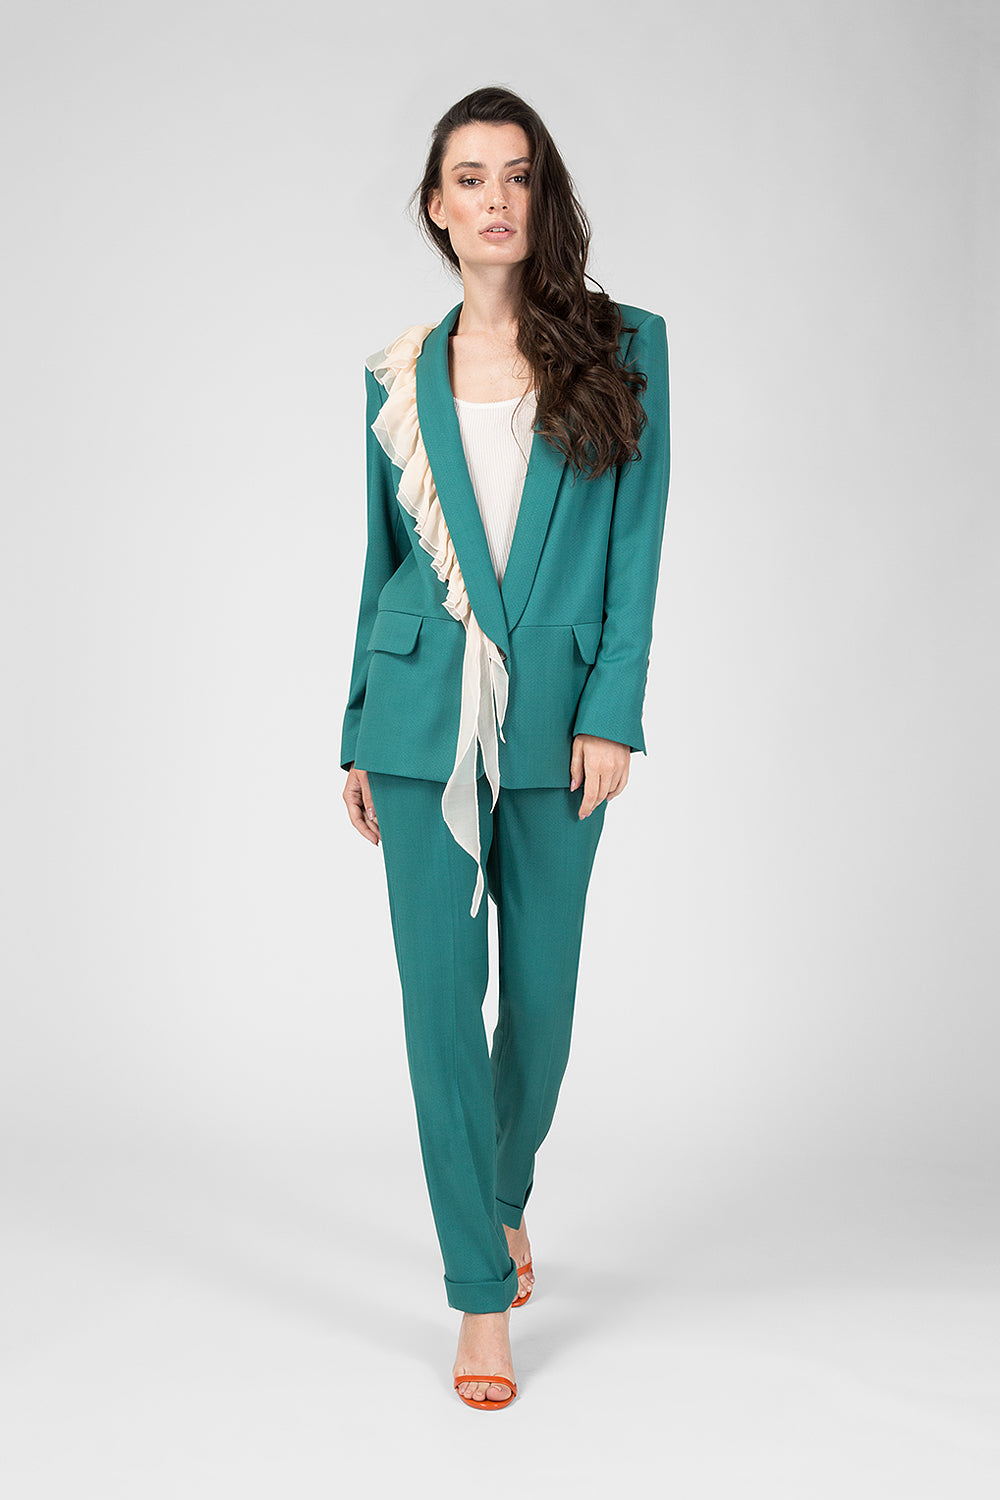 Green suit with ruches